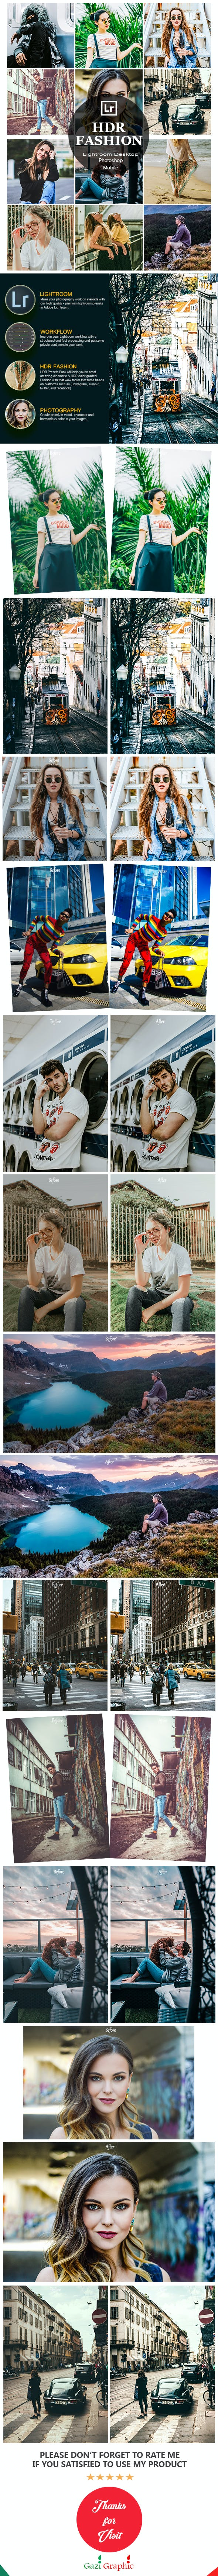 10 HDR Fashion Lightroom Desktop and Mobile Presets - HDR Lightroom Presets